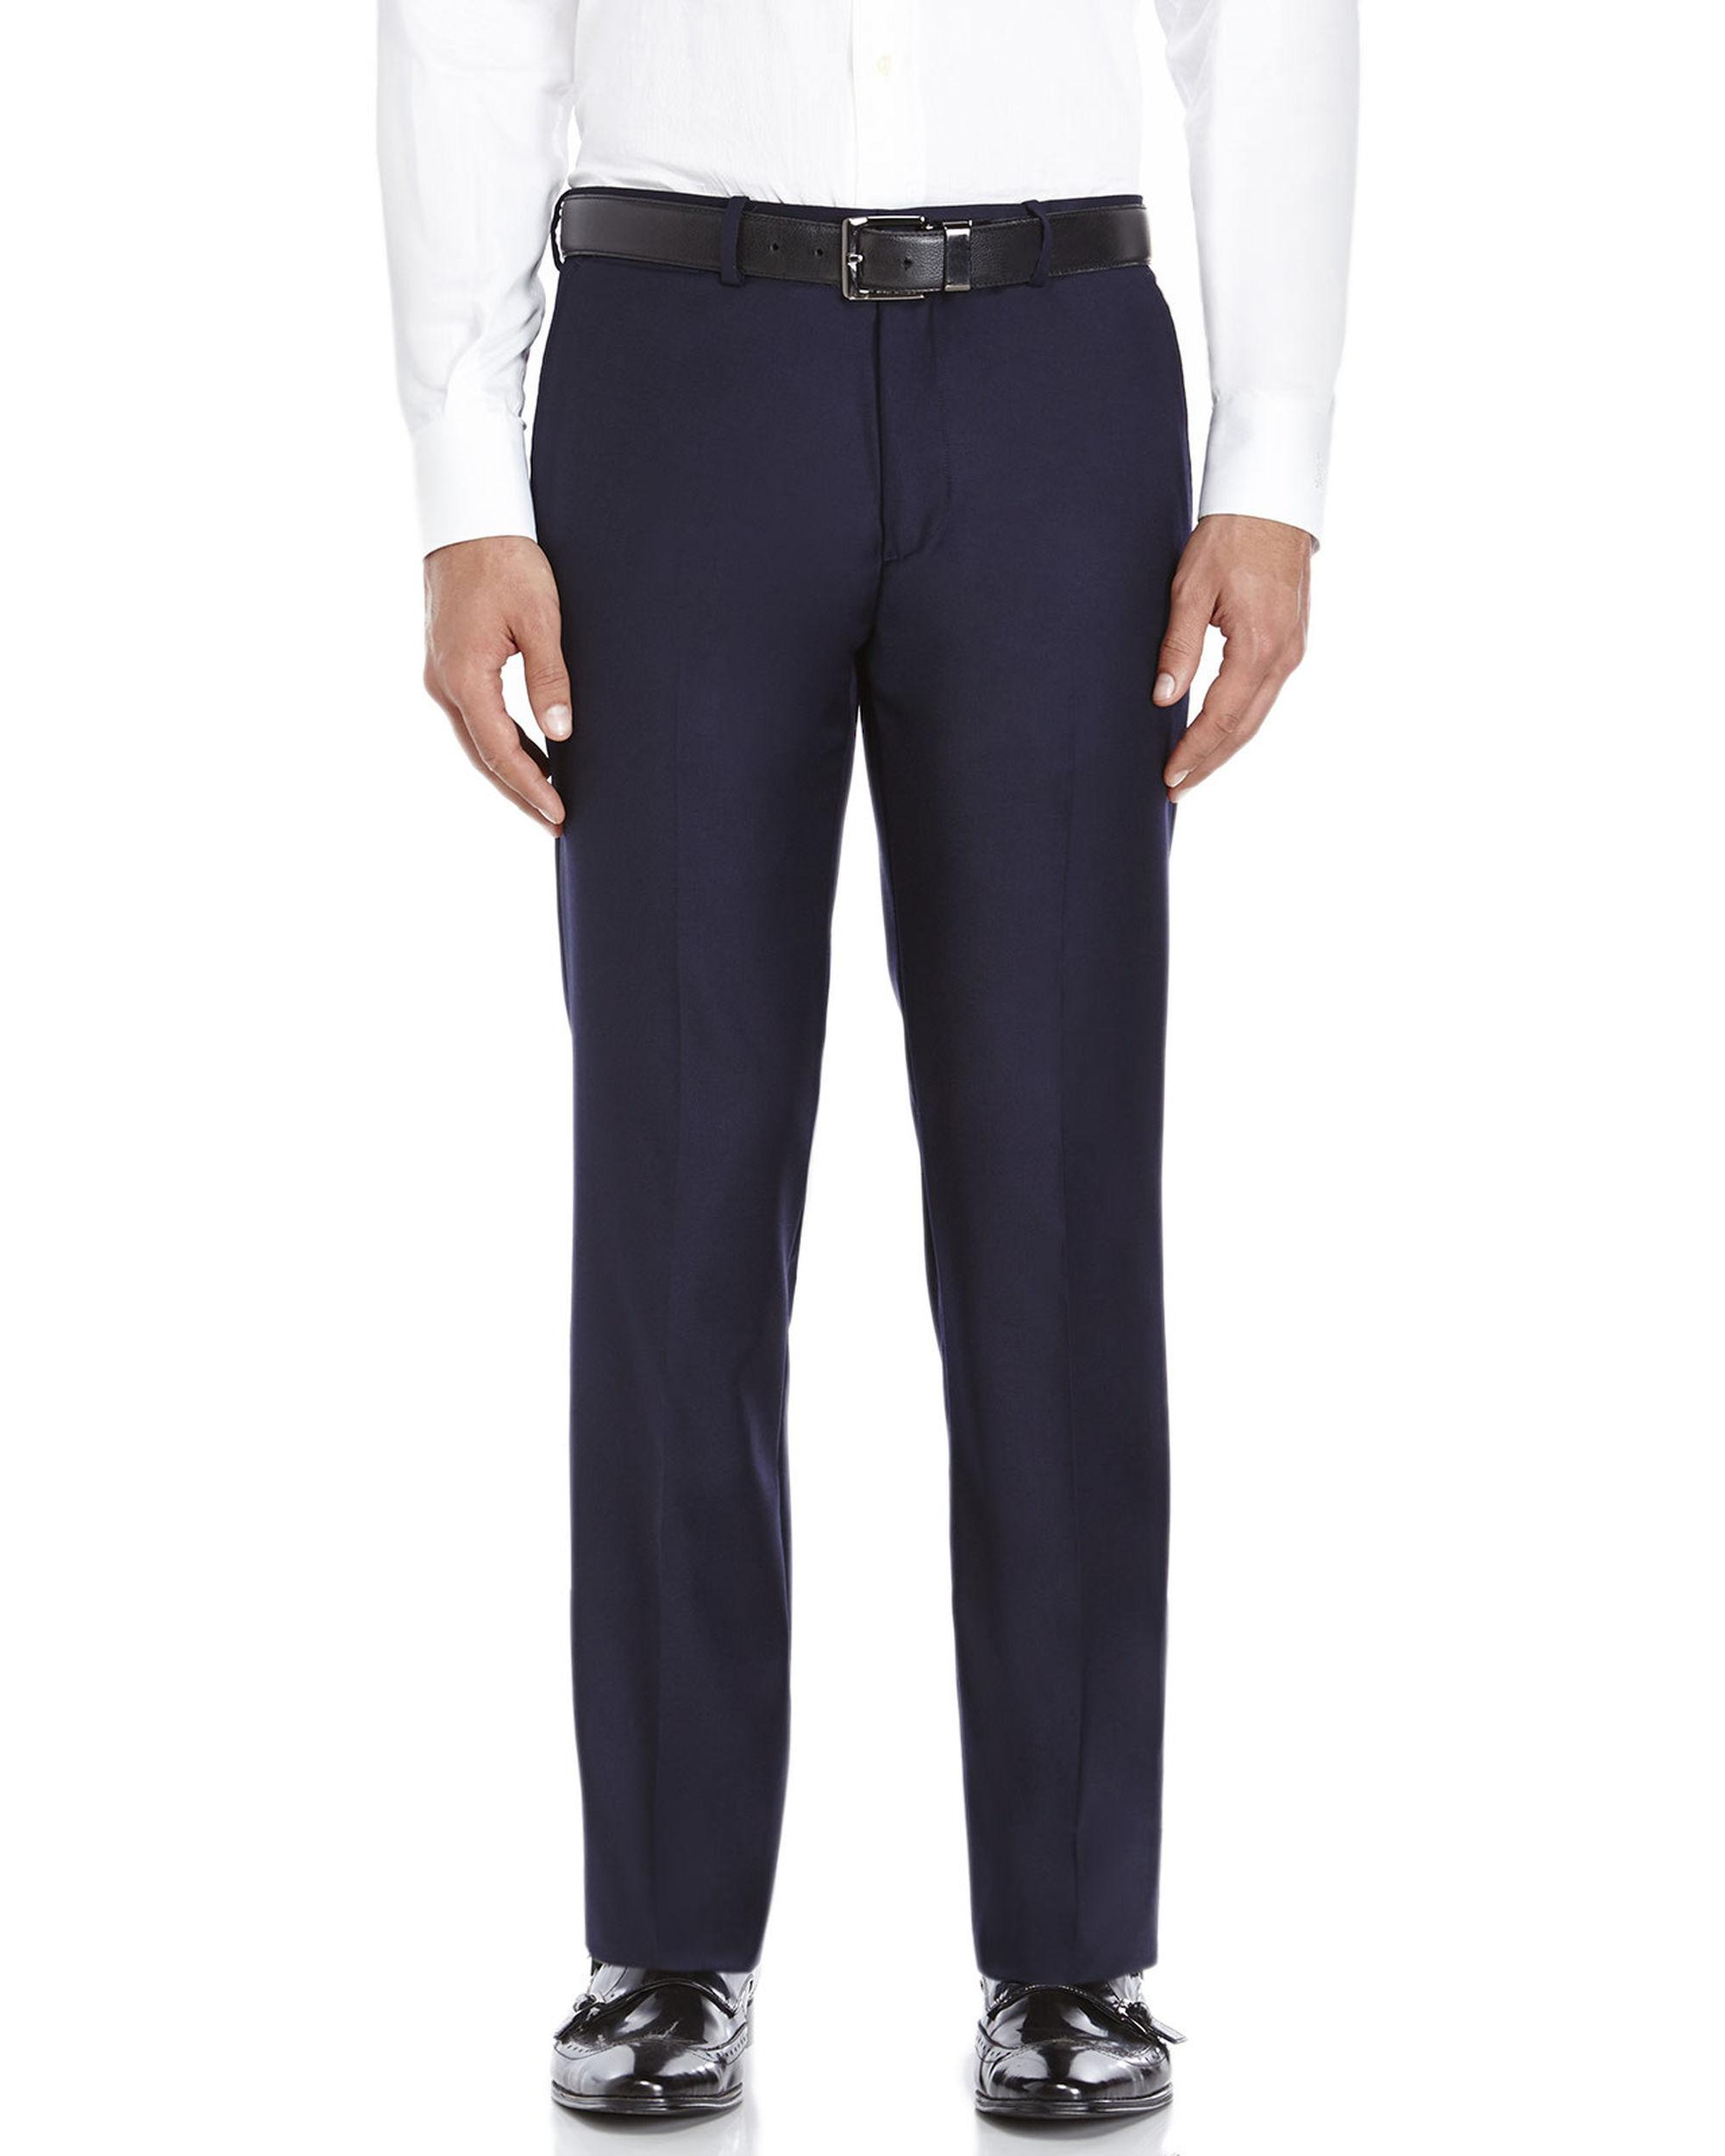 566d721ce0 Lyst - Theory Navy Slim Fit Wool Suit Pants in Blue for Men